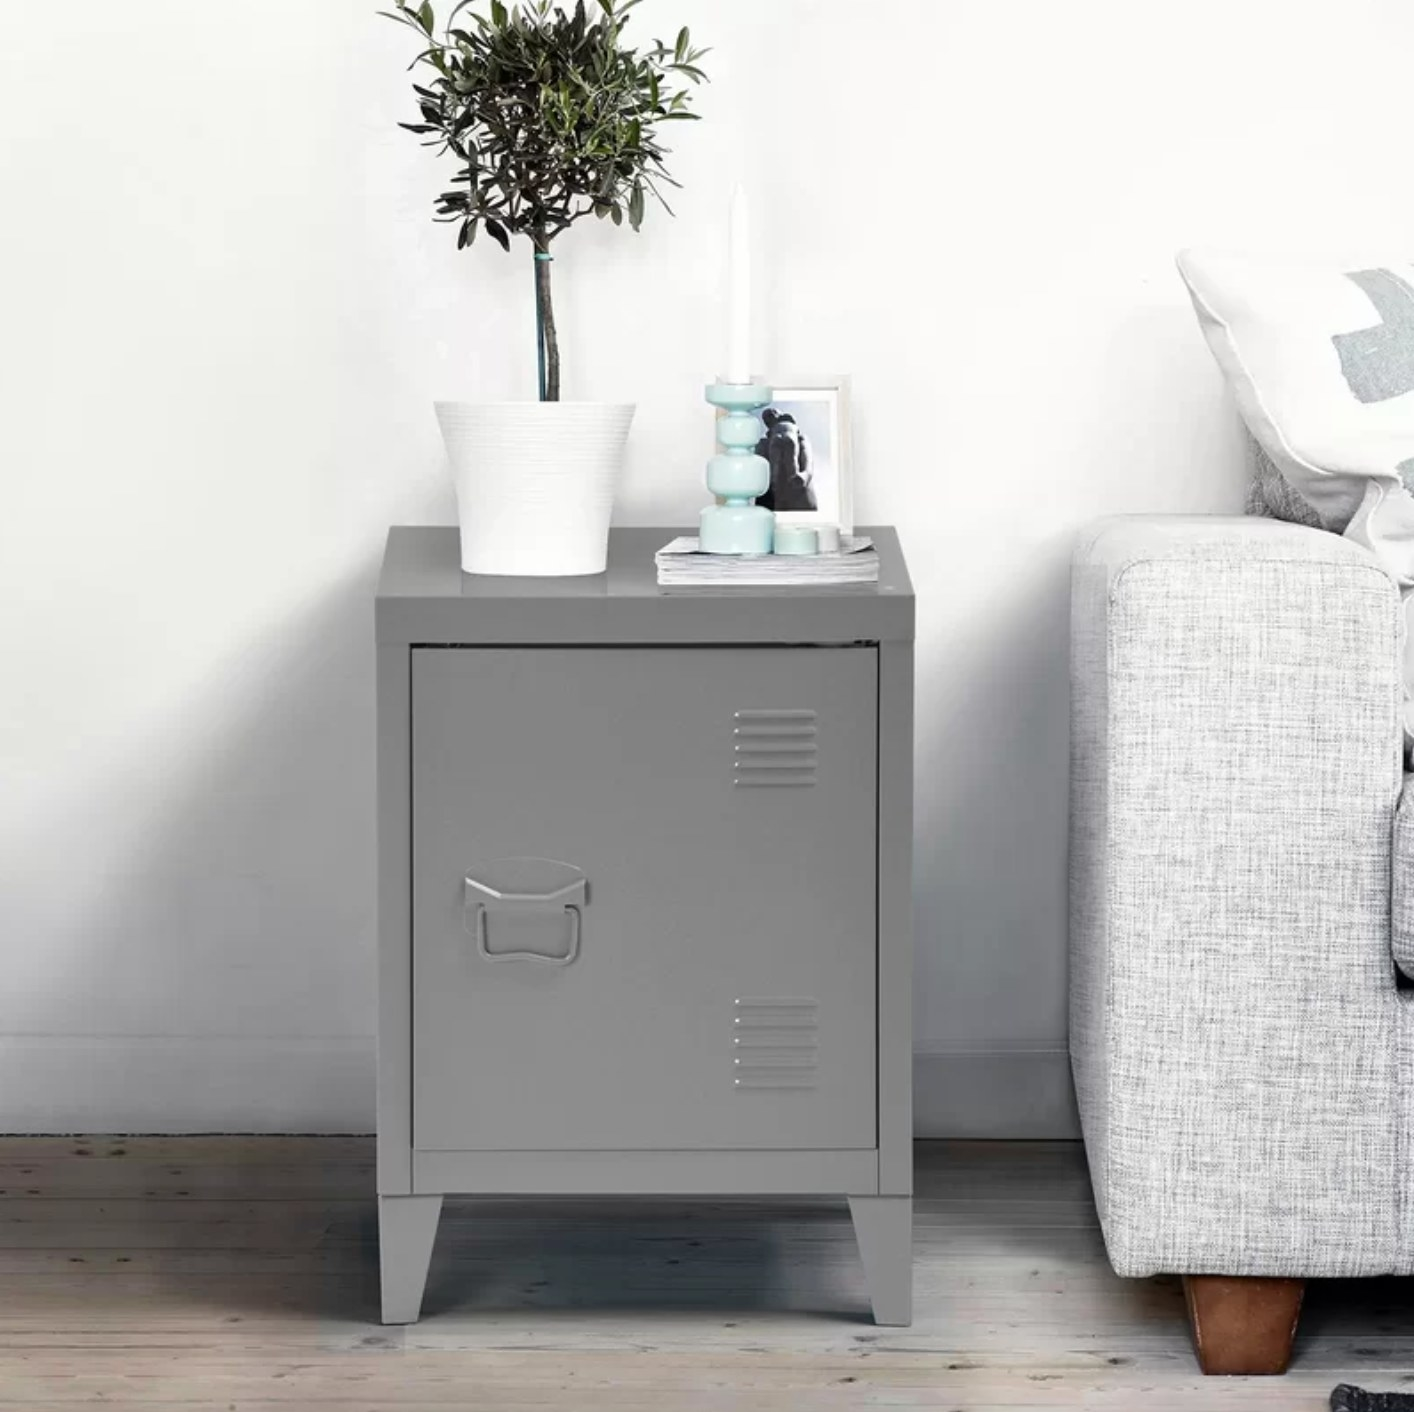 The metal nightstand in dark gray with school locker detailing